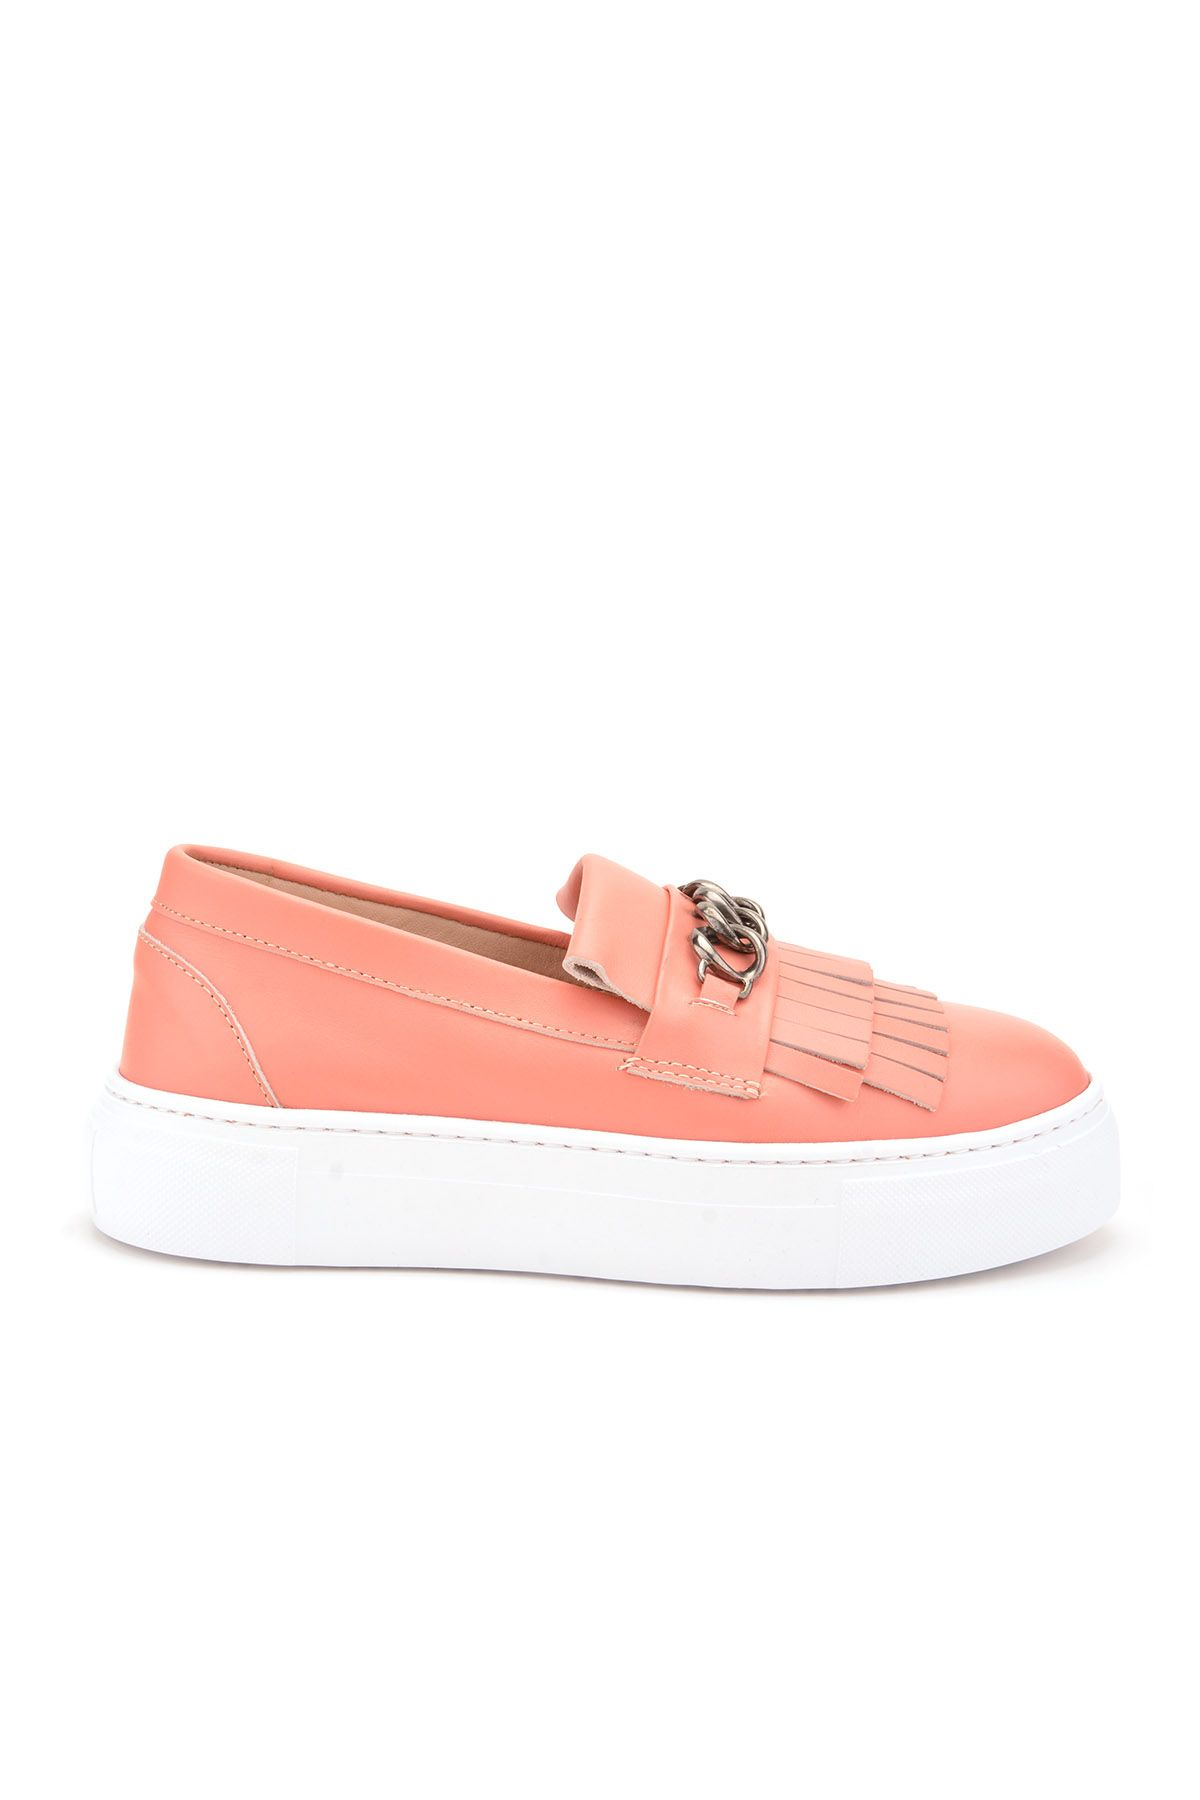 Pegia Sertier Casual Shoes From Genuine Leather REC-003 Pink